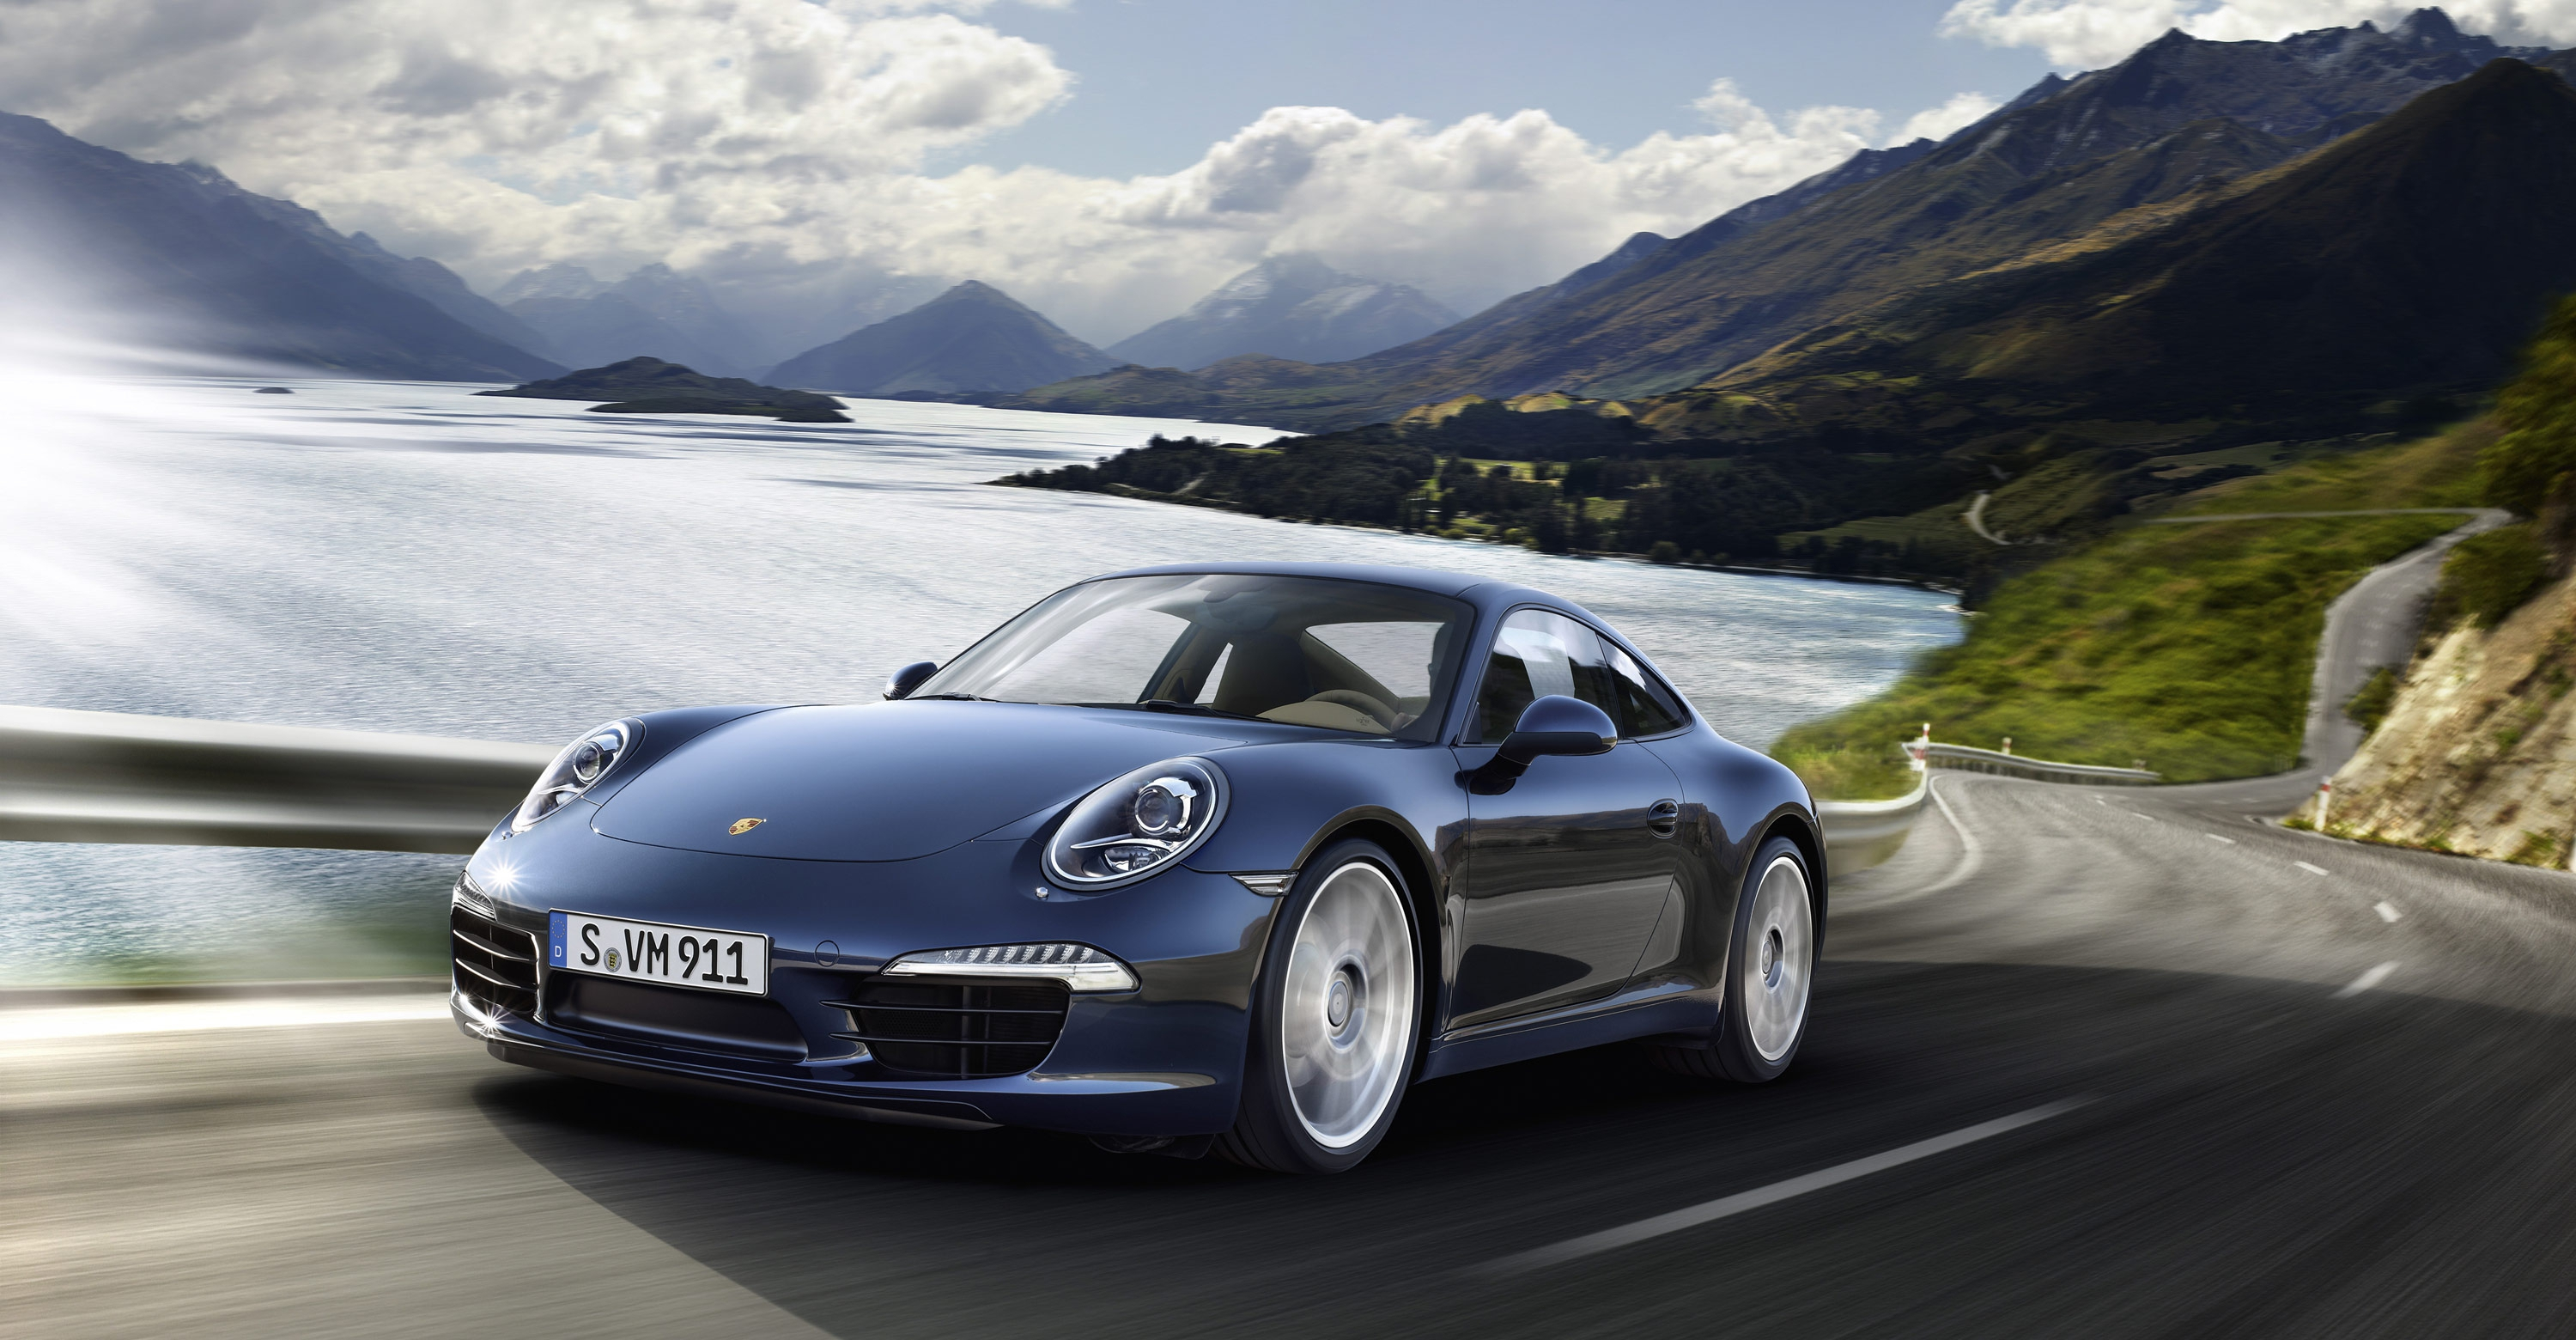 Porsche 911 Wallpapers Images Photos Pictures Backgrounds